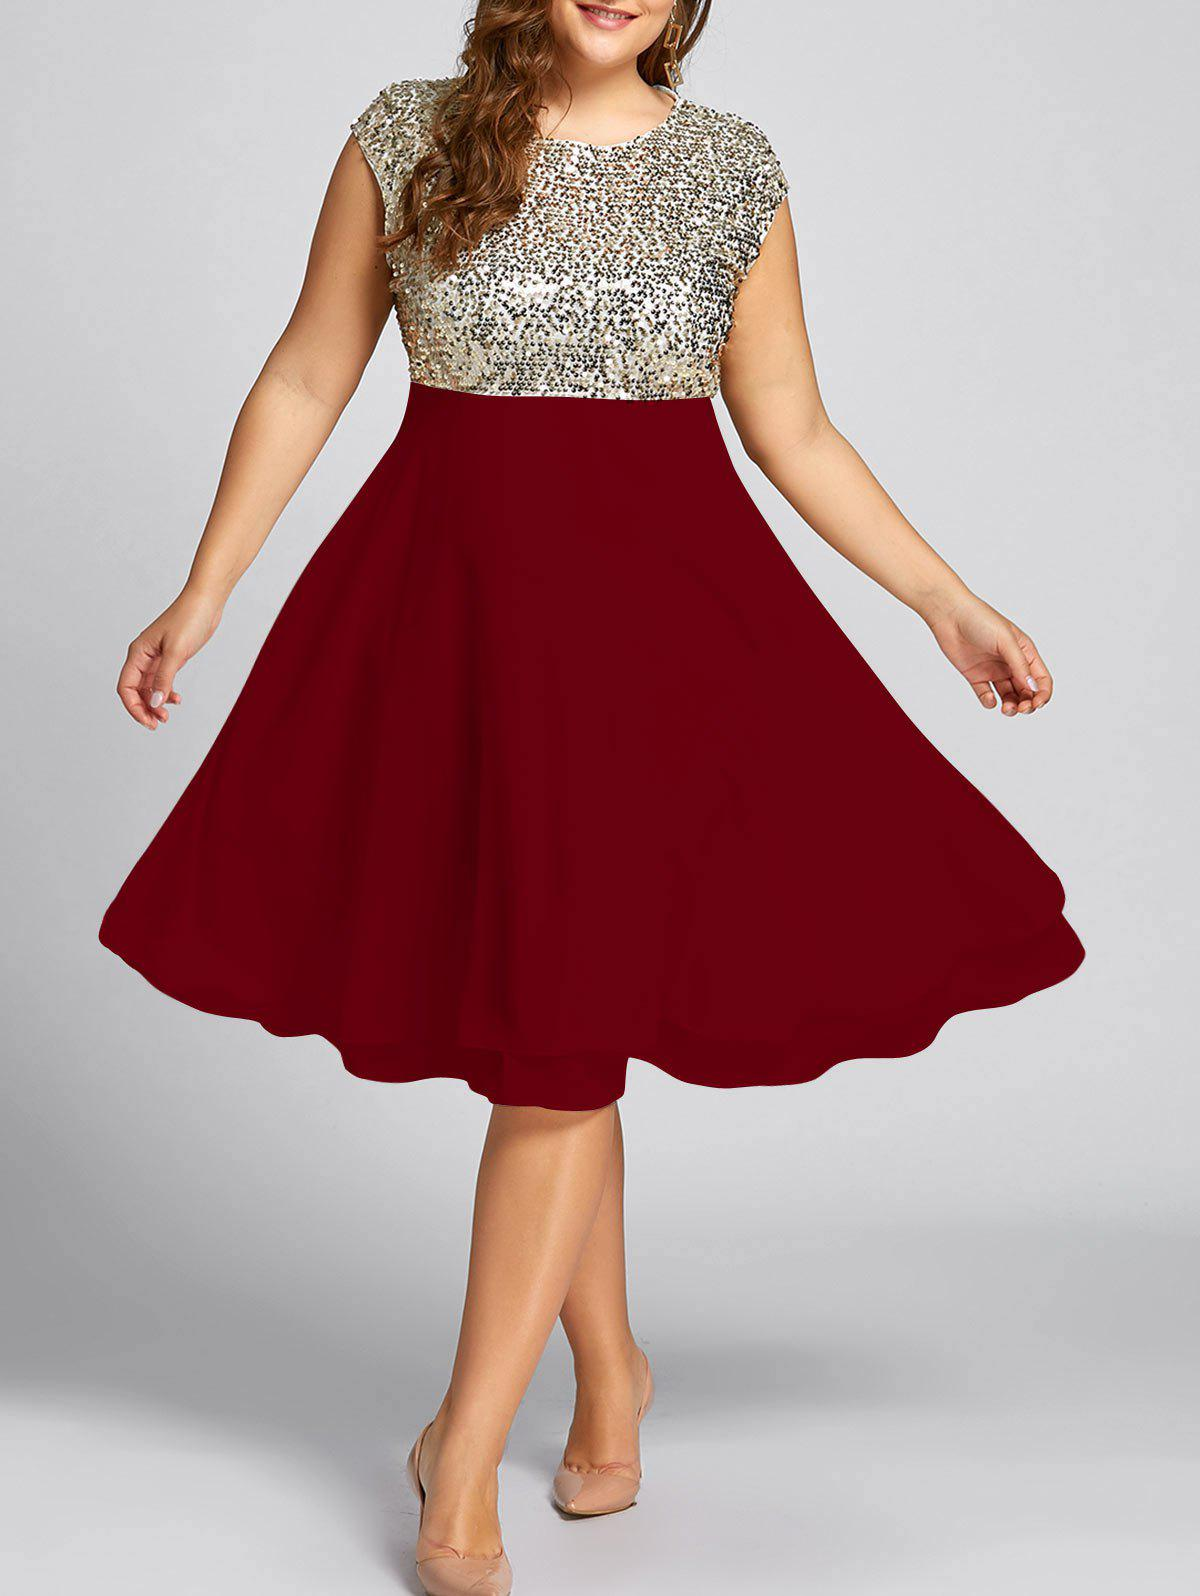 9734af9fb64 Flounce Plus Size Sparkly Sequin Cocktail Dress - 3xl. rosegal